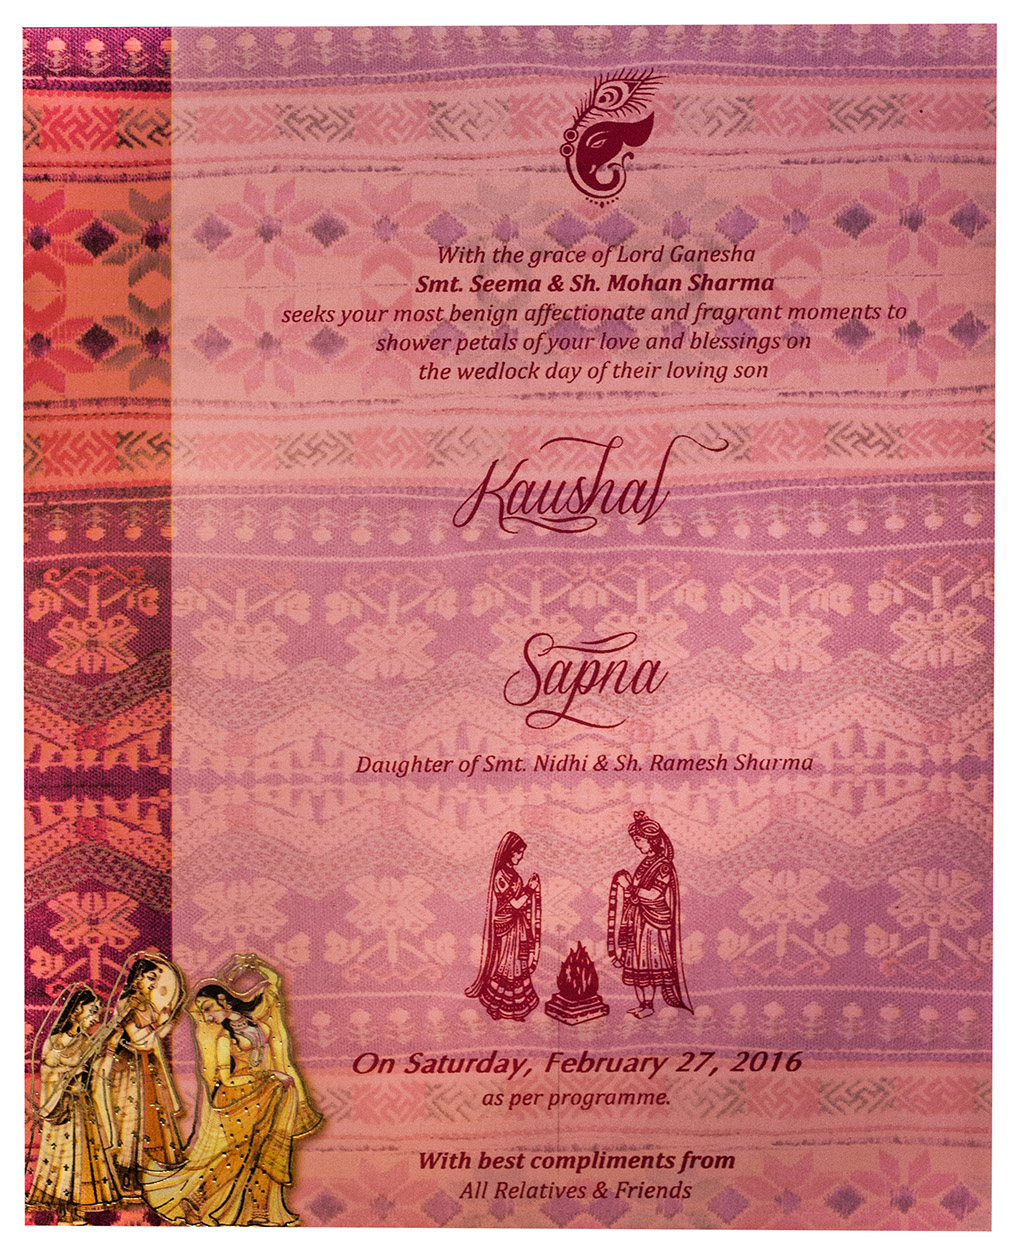 Indian Wedding Invitations in Traditional Design & Colors